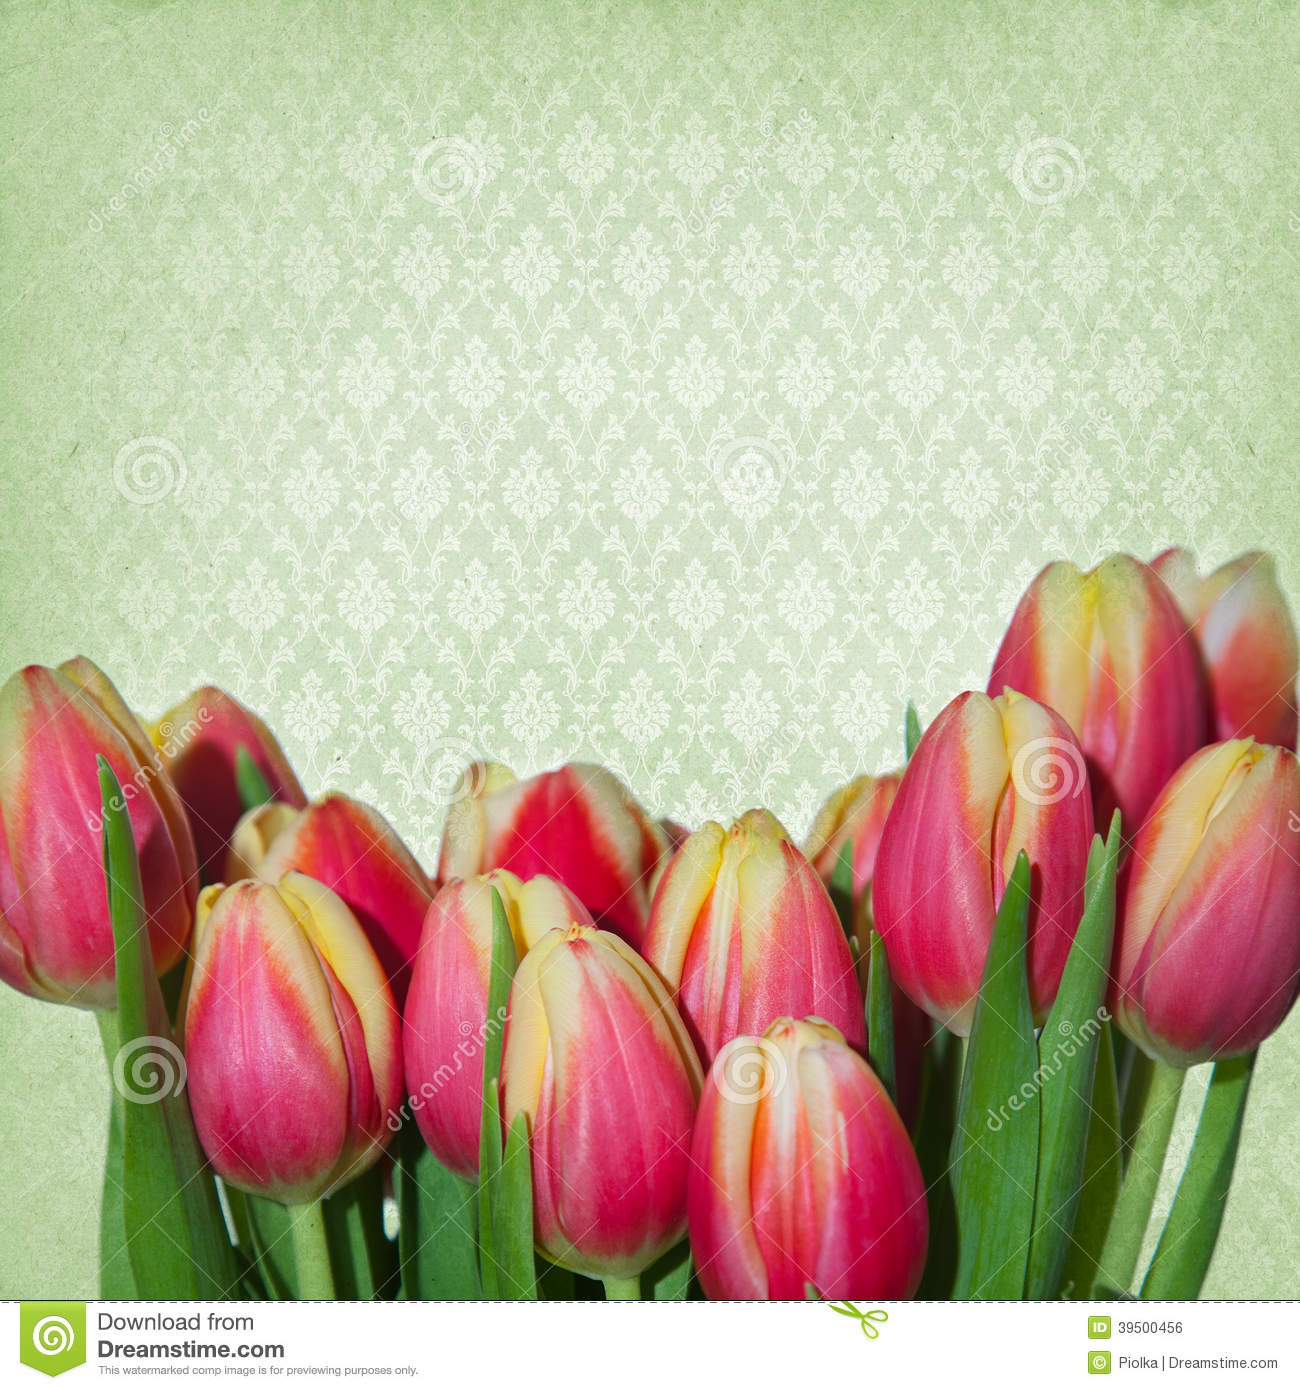 Dreamy springflowers background